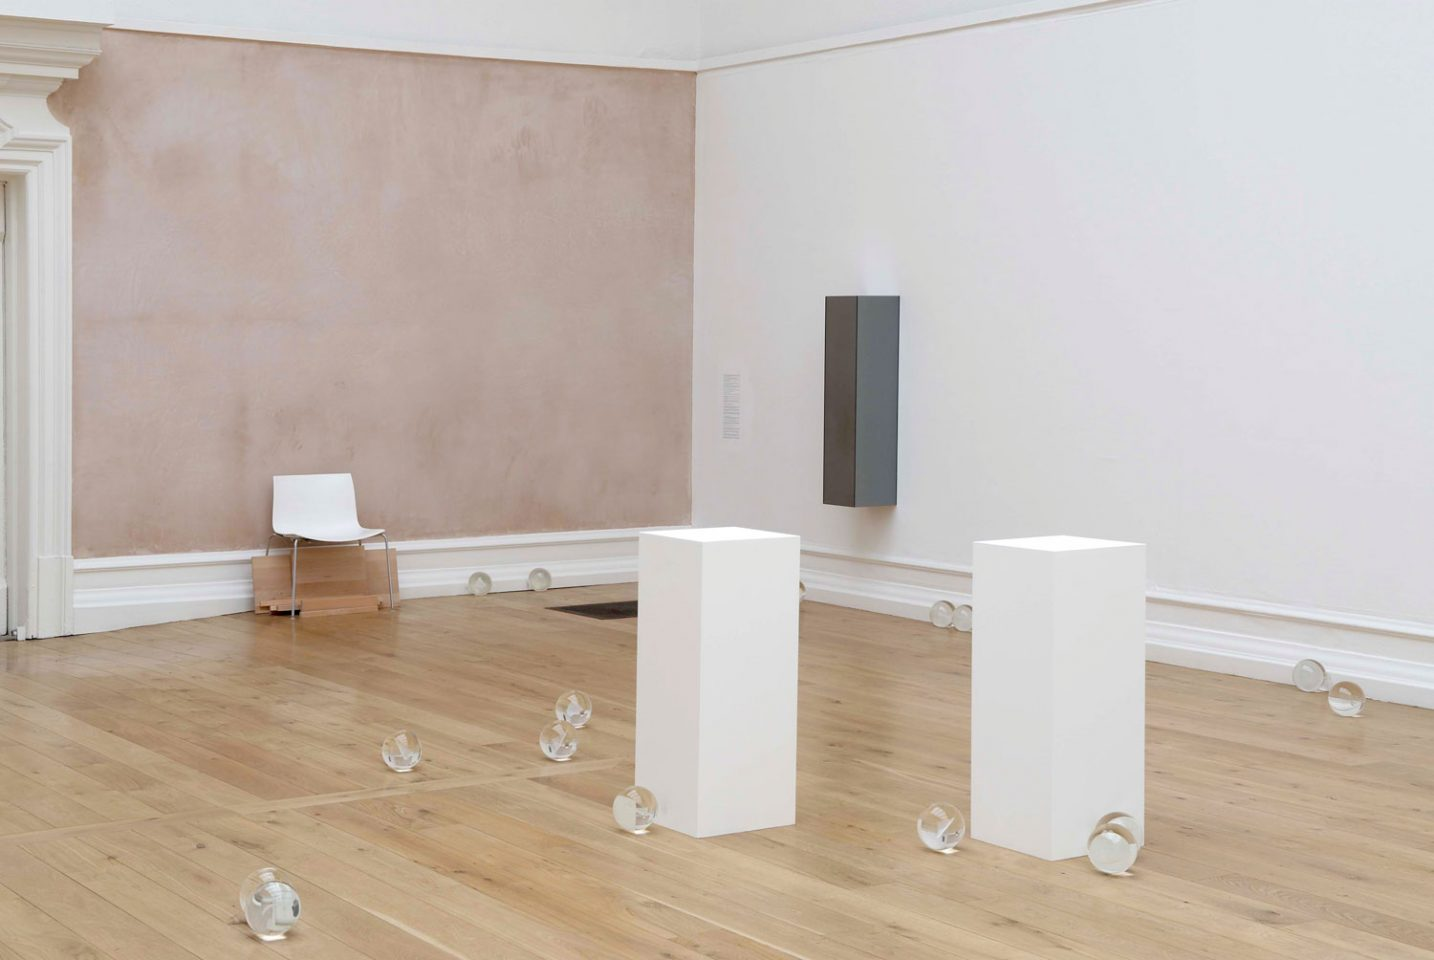 Installation view of Ryan Gander's 2008 exhibition Heralded as the New Black. Photo: Andy Keate